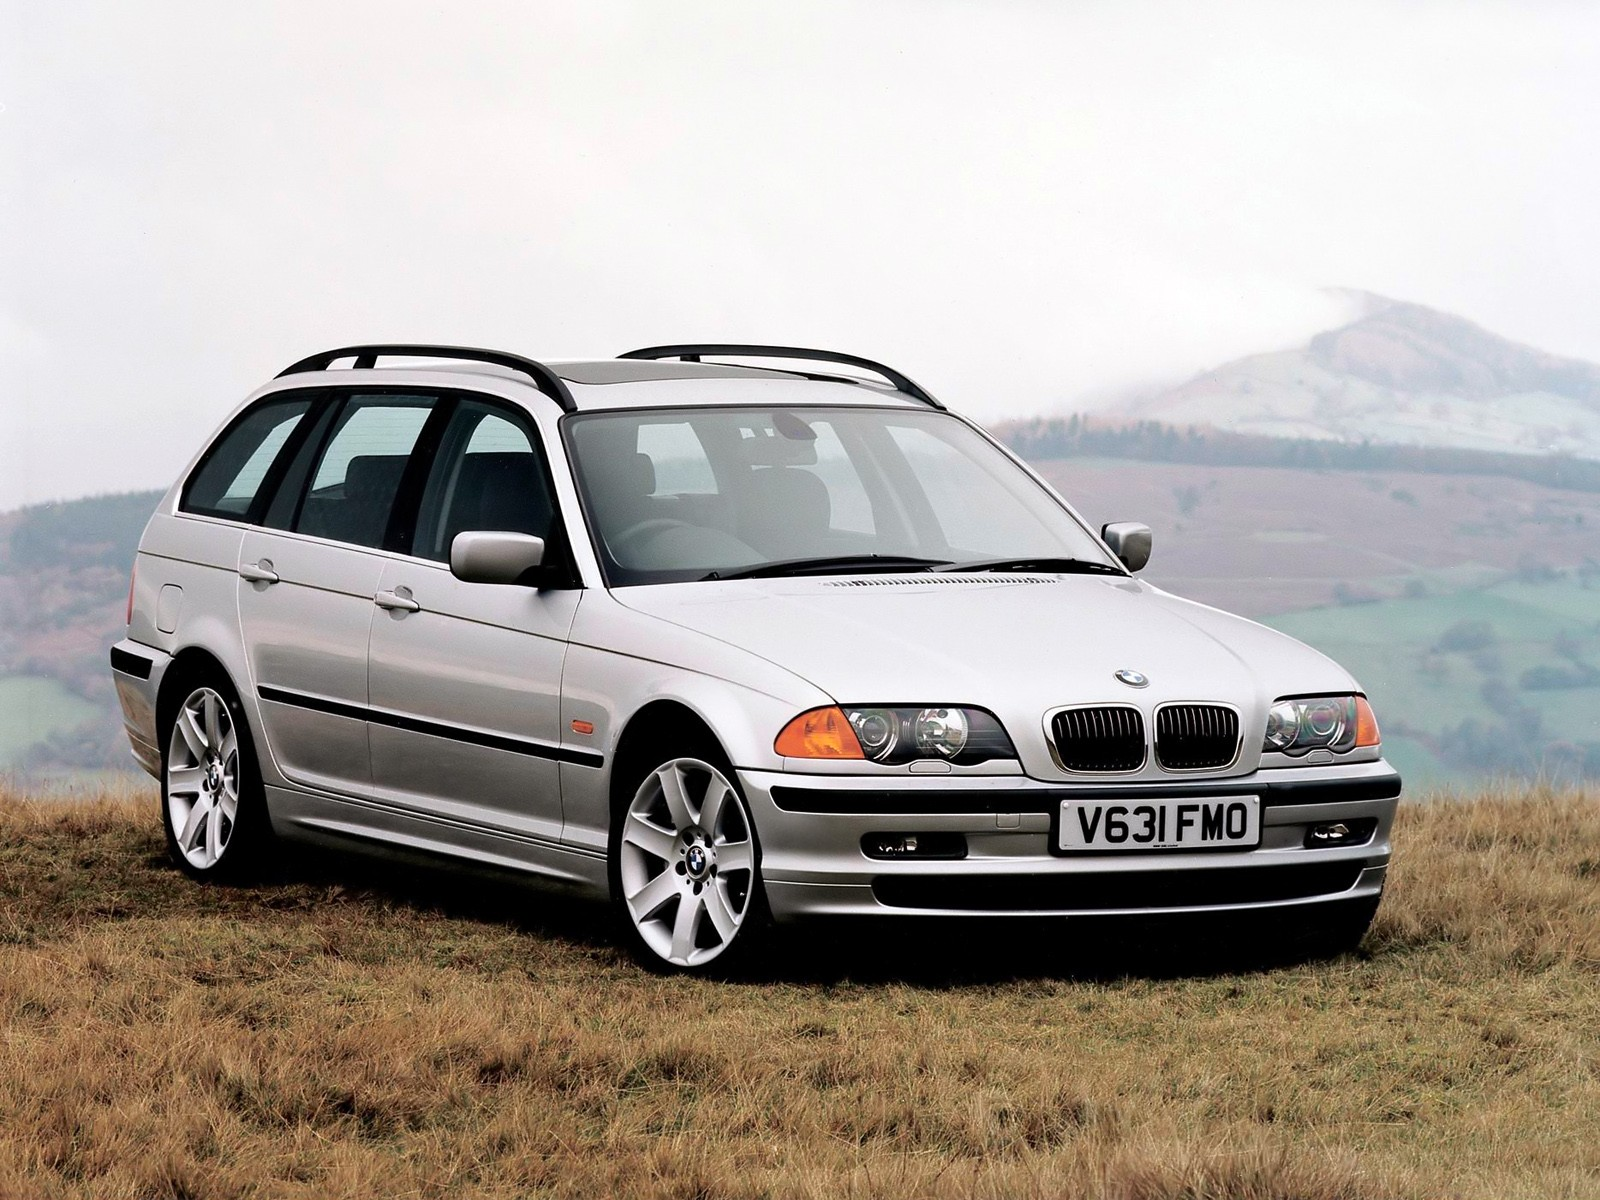 1999 bmw 3 series touring e46 pictures information and specs auto. Black Bedroom Furniture Sets. Home Design Ideas